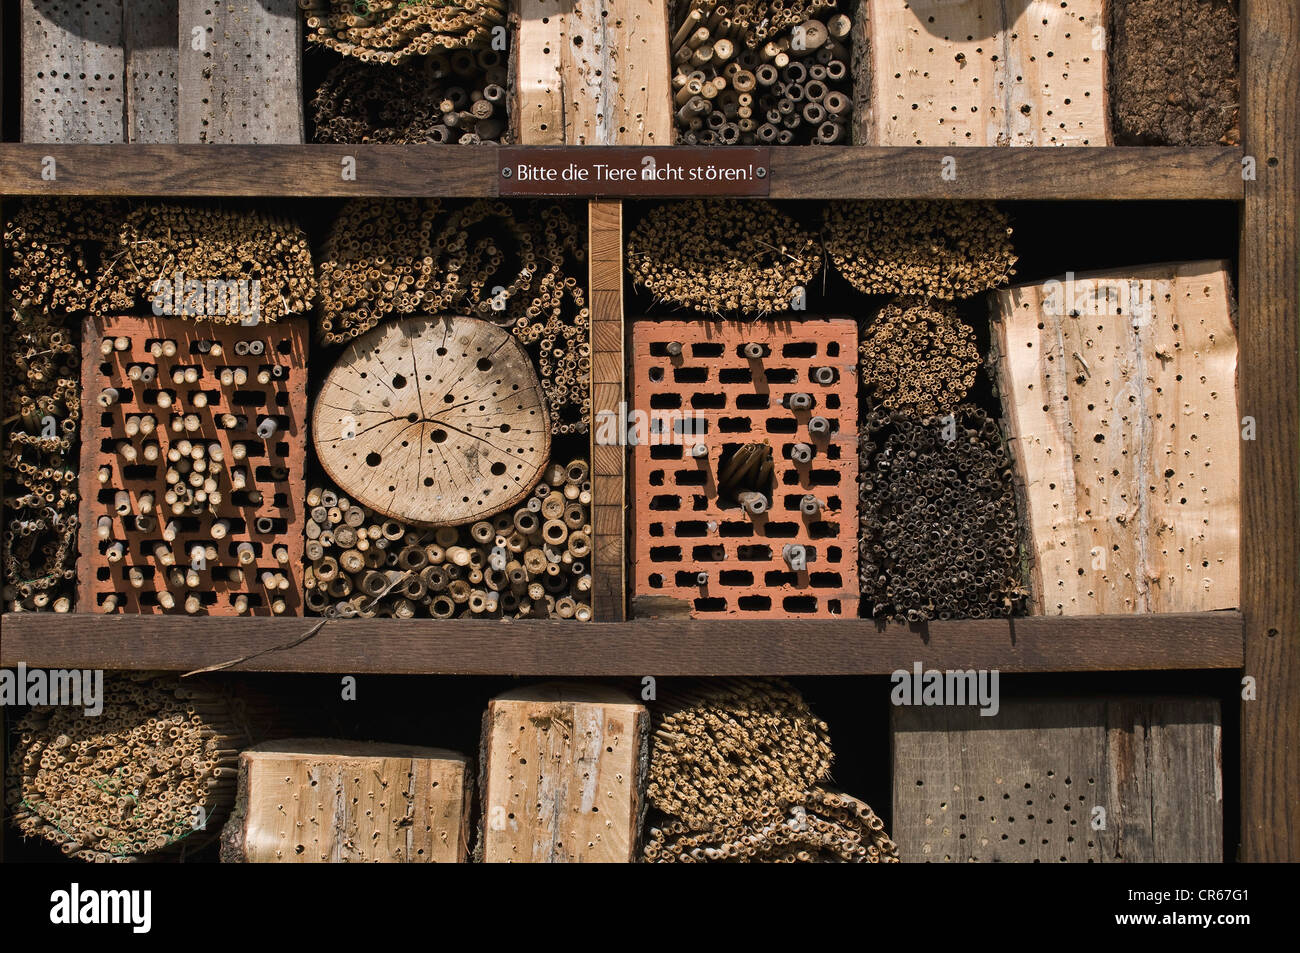 Insect house, insect hotel with notice 'Bitte die Tiere nicht stoeren!', German for 'Please do not disturb - Stock Image